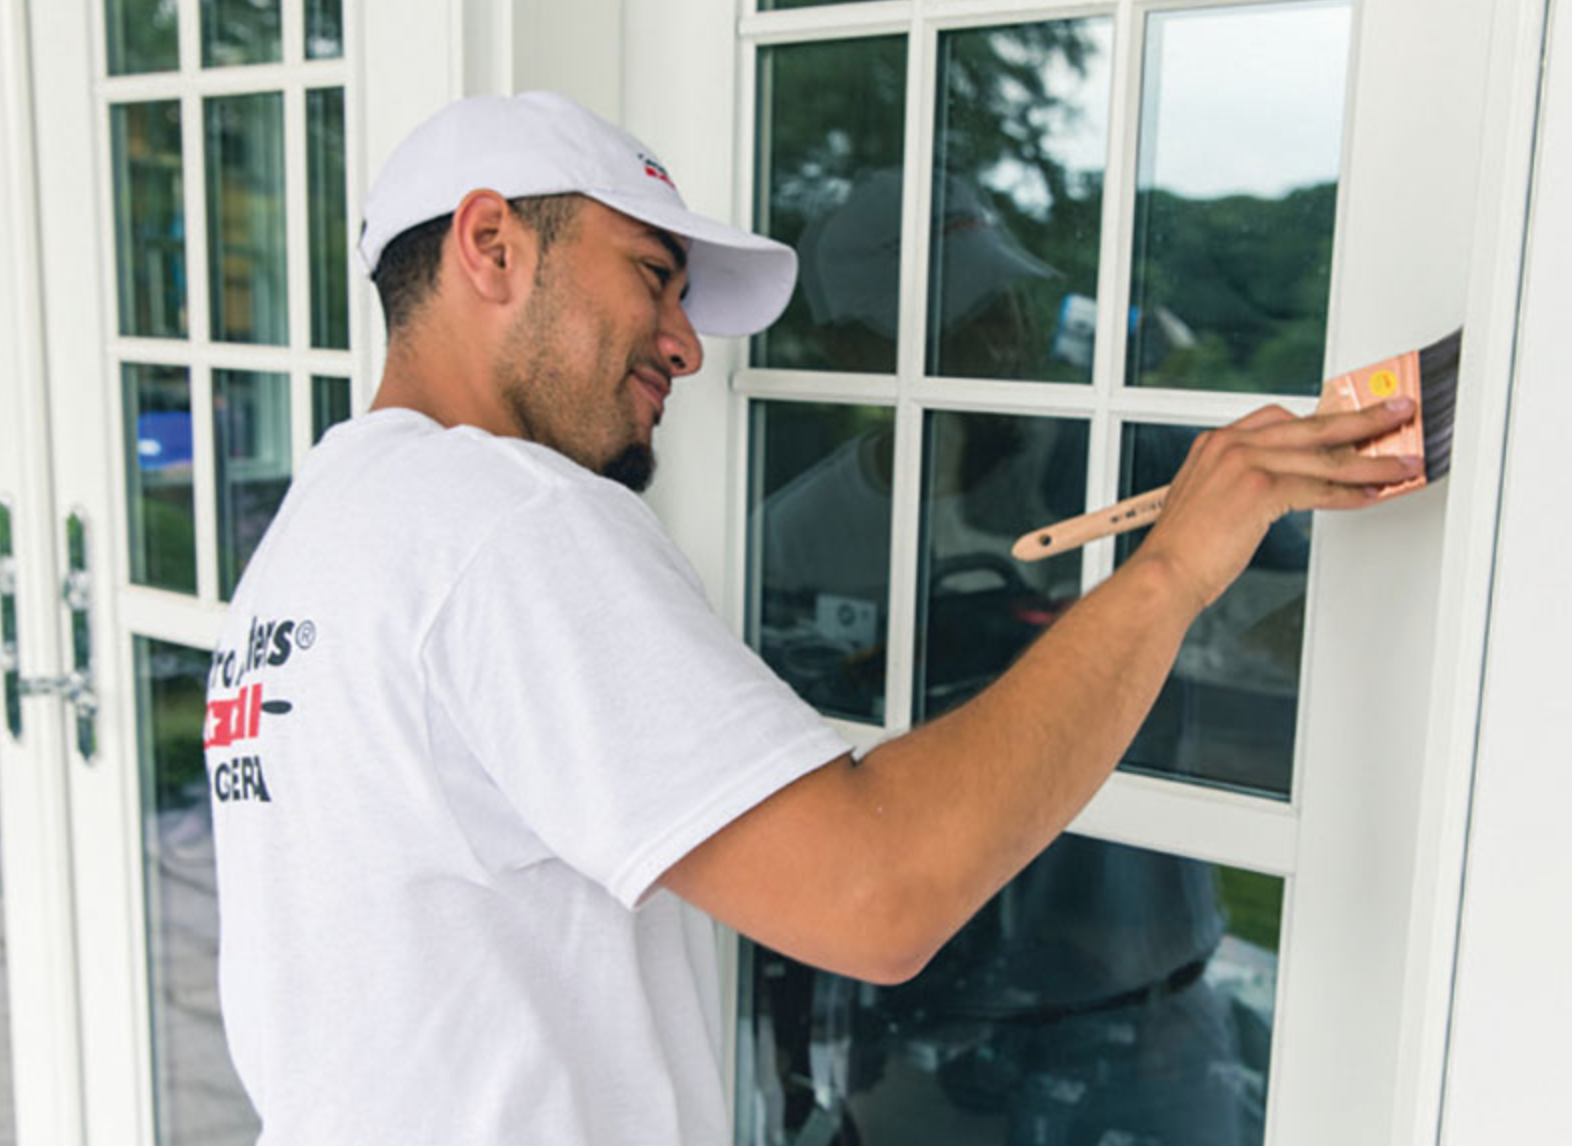 Looking to repaint part of your home? Try CertaPro Painters Of Salt Lake! They offer reliable and quality services. #homemagapproved #homeprofessionals  . . . . . . #homes #realestate #realtor #home #design #house #interiordesign #houses #realestateagent #dreamhome #luxury #architecture #homesweethome #luxuryhomes #interior #property #househunting #newhome #realtors #realtorlife #homedecor #luxuryrealestate #decor #forsale #realty #lifestyle #luxurylifestyle #openhouse #investment